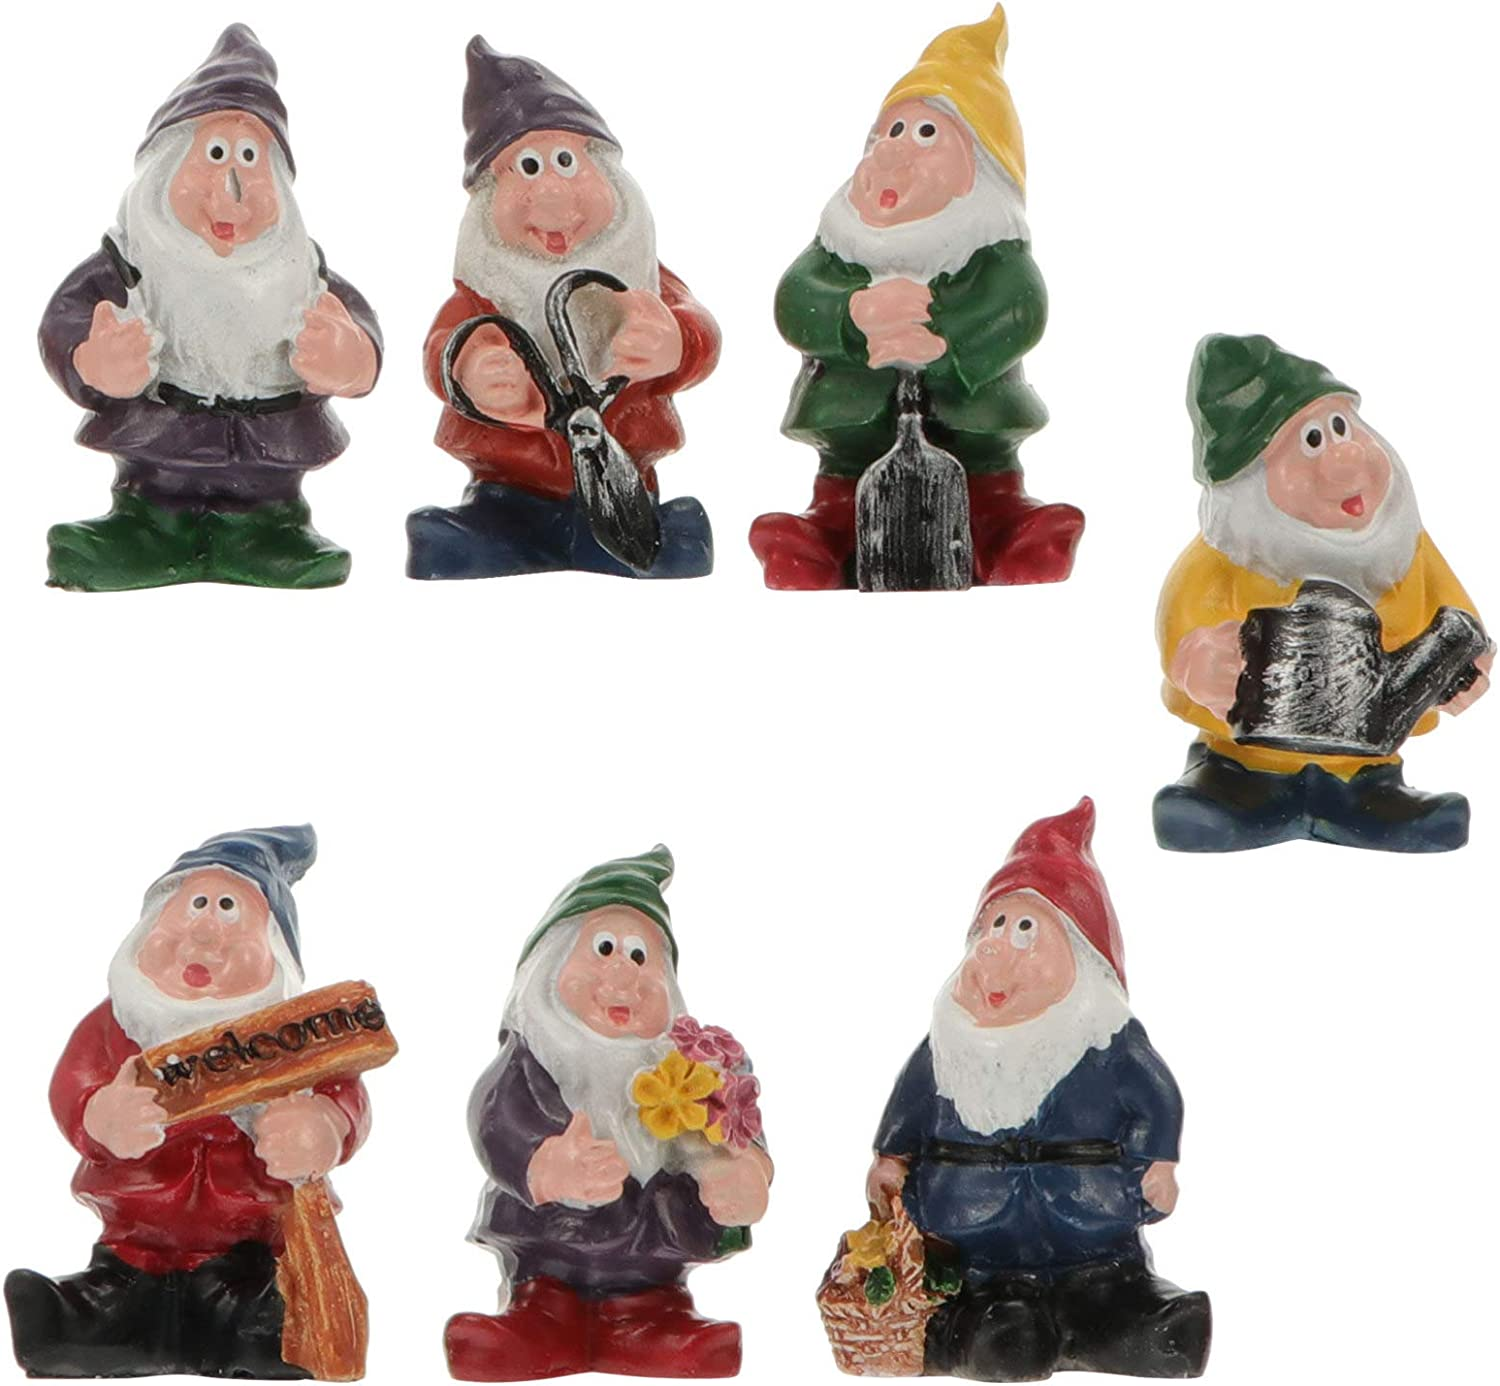 NUOBESTY 7 Pcs Mini Gnomes Fairy Garden Accessories Set Seven Dwarfs Statue with Flowers and Tools for Decoration Small Ornaments Cake Topper Decor